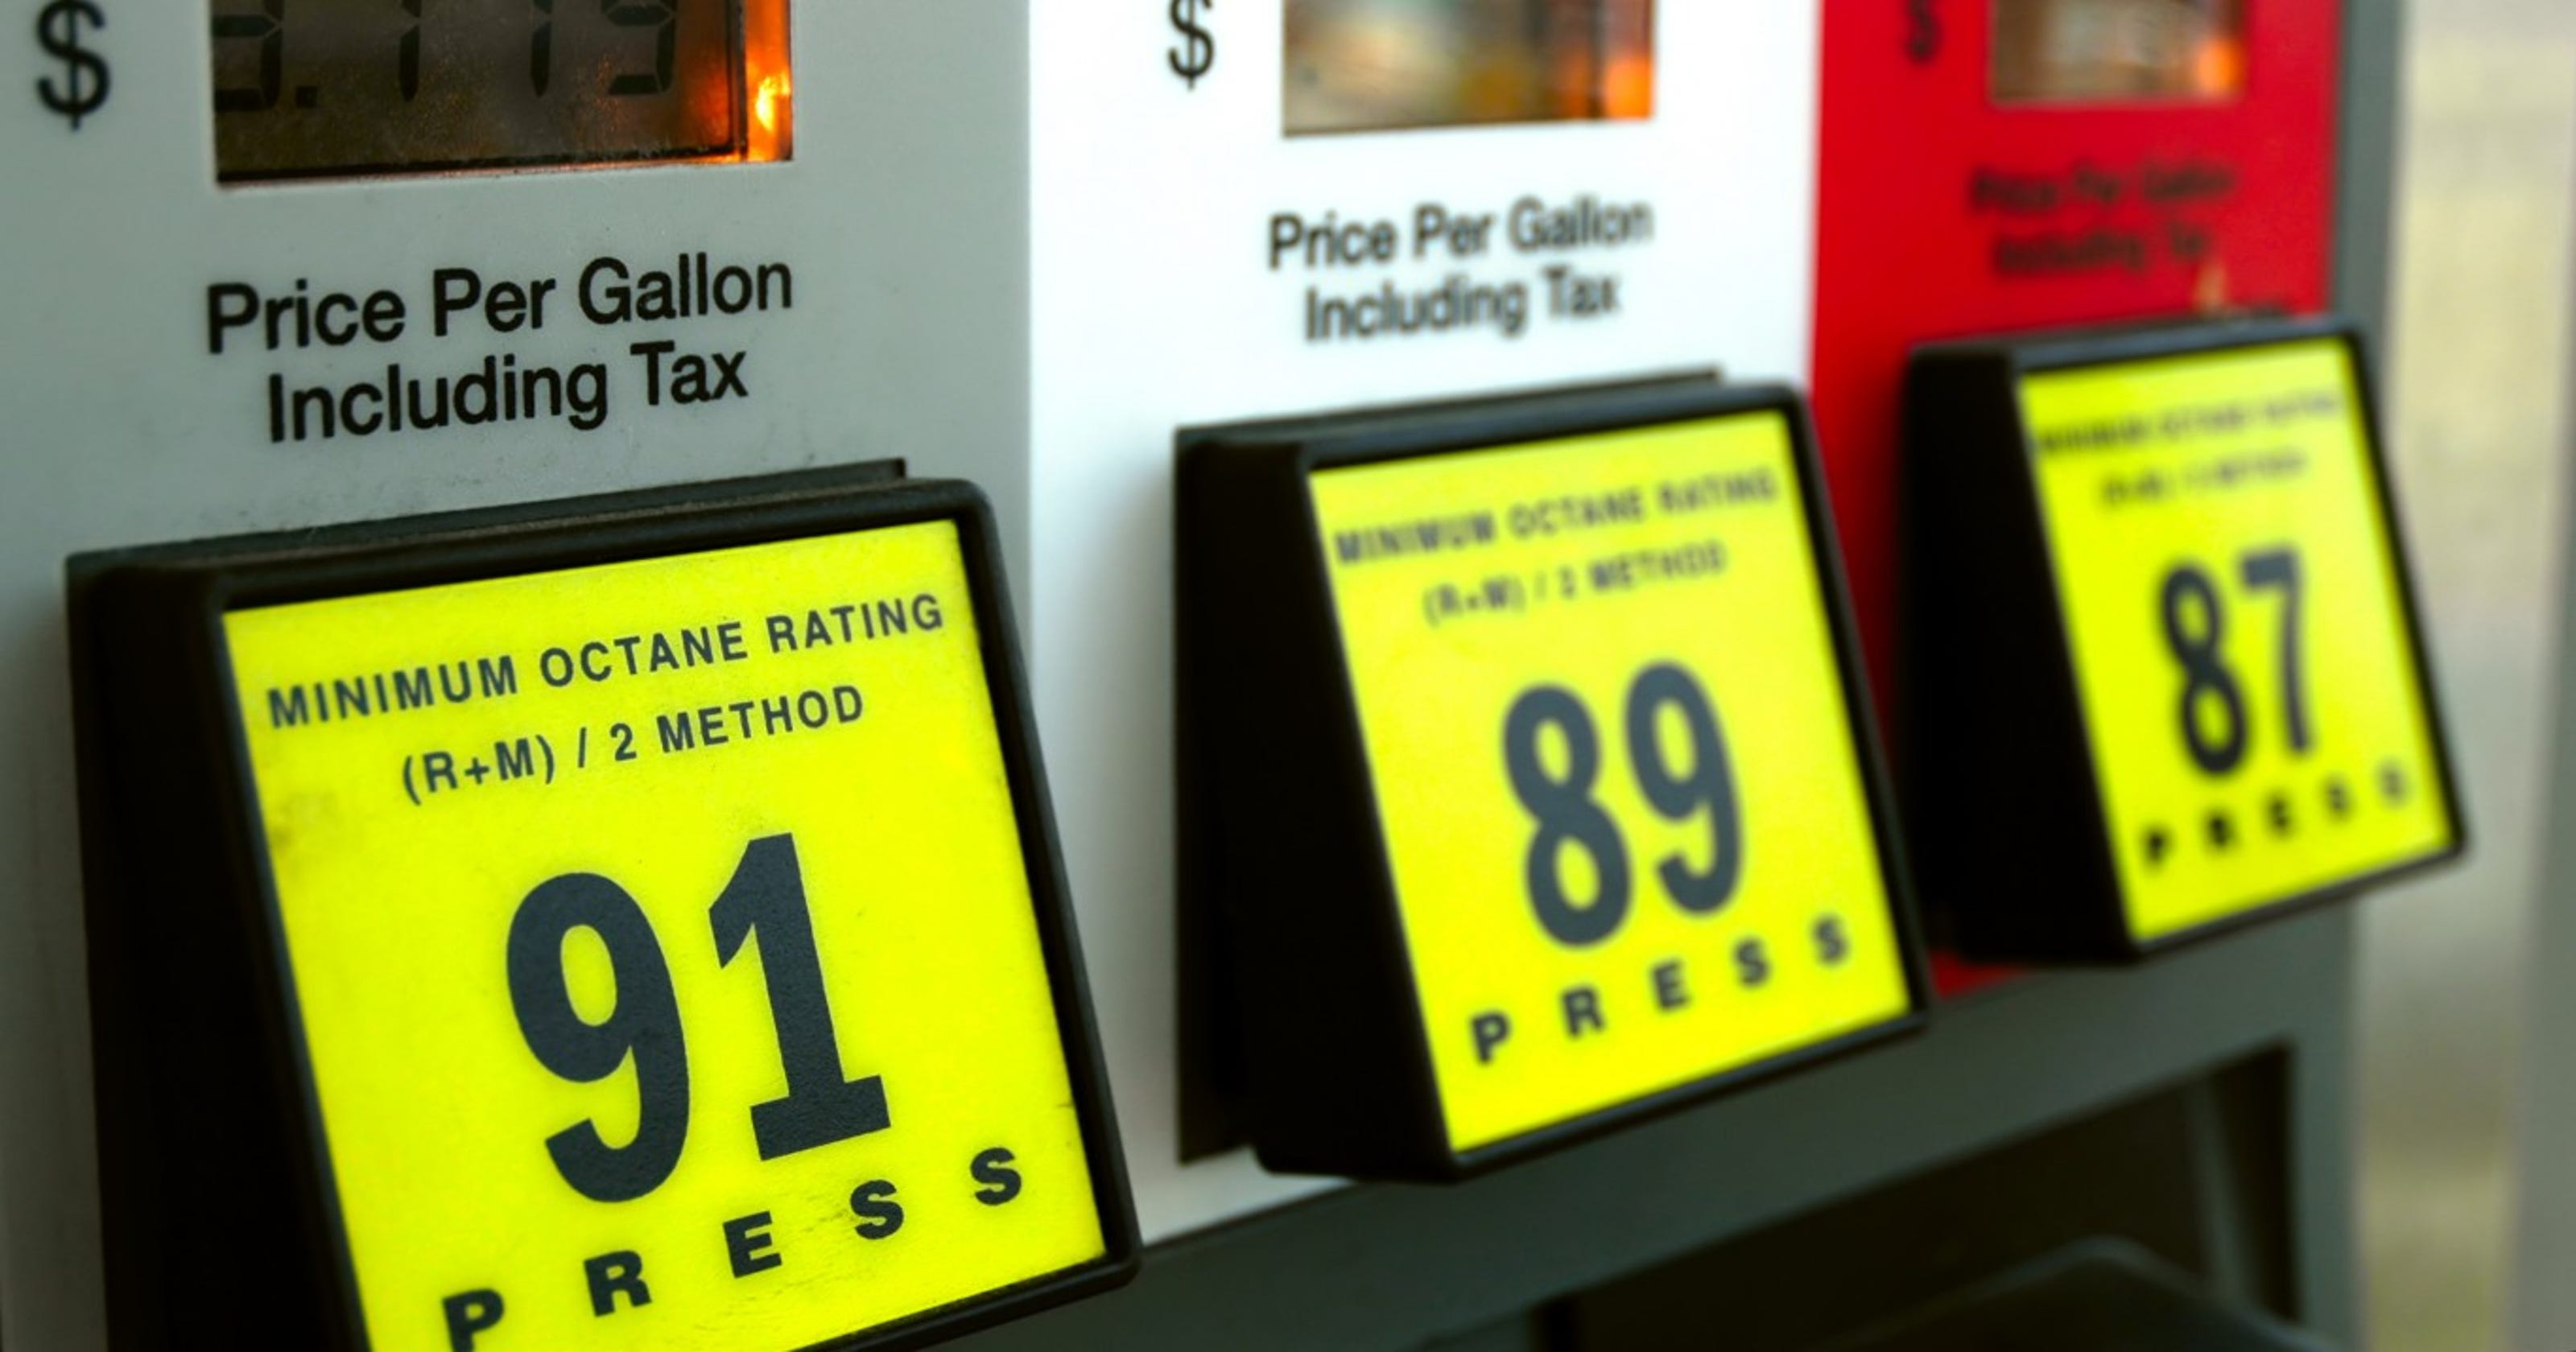 Gas prices: Why Monday is best day to fill up and Friday is